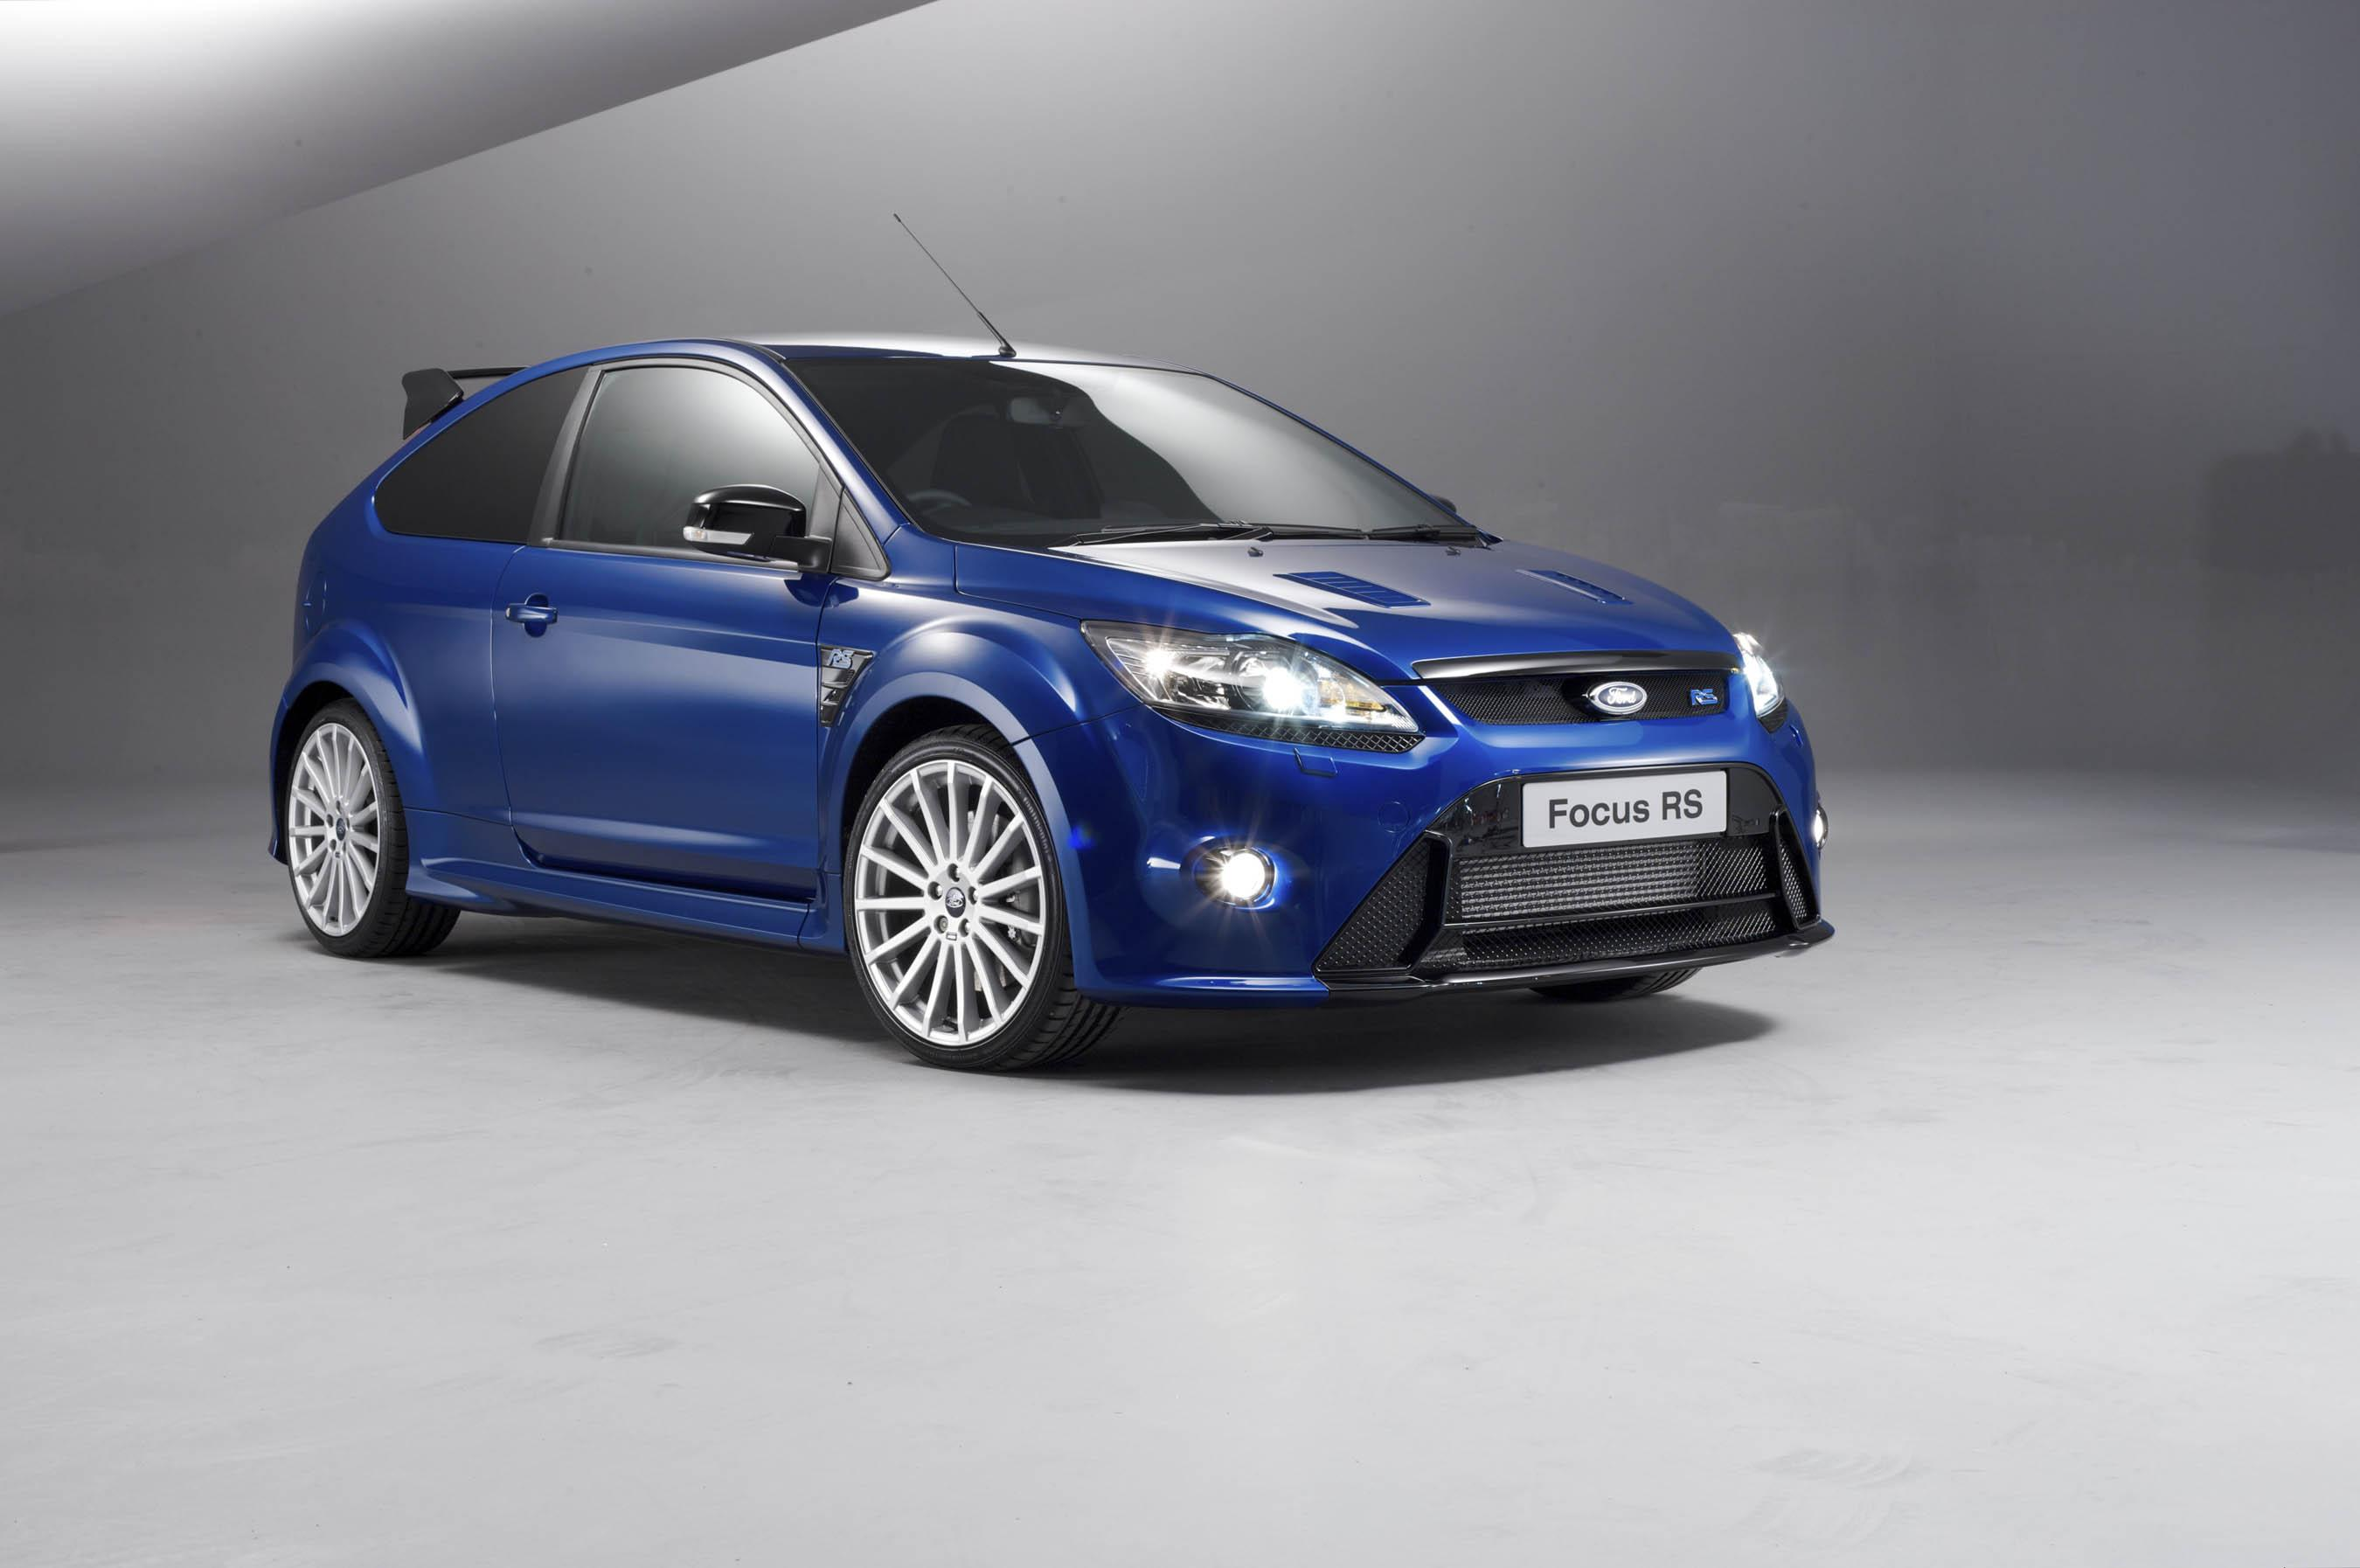 2009 Ford Focus RS | Top Speed. »